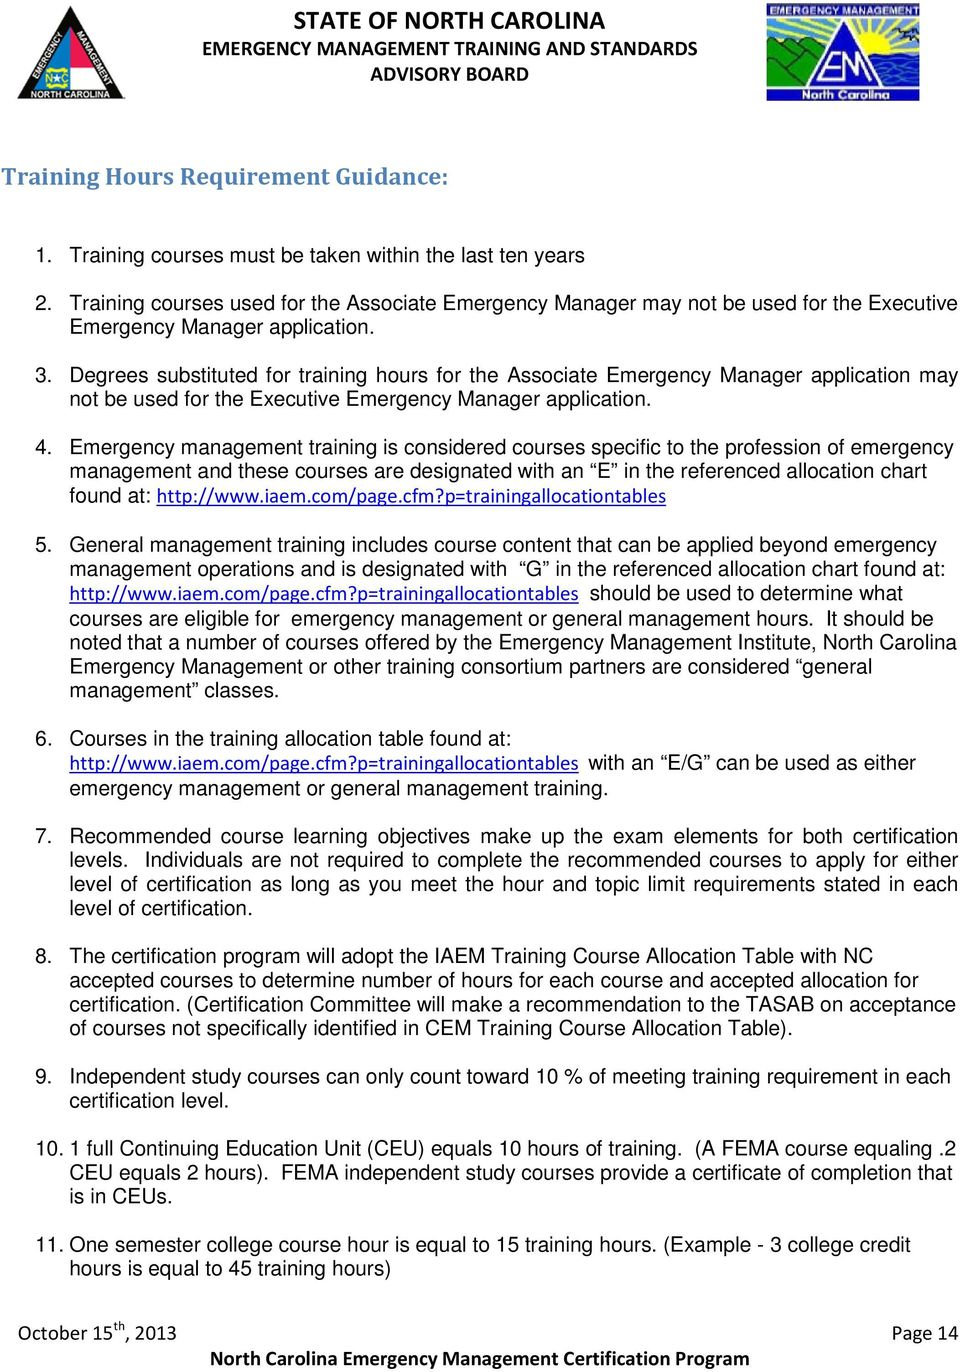 North carolina emergency management certification program pdf degrees substituted for training hours for the associate emergency manager application may not be used for fandeluxe Image collections